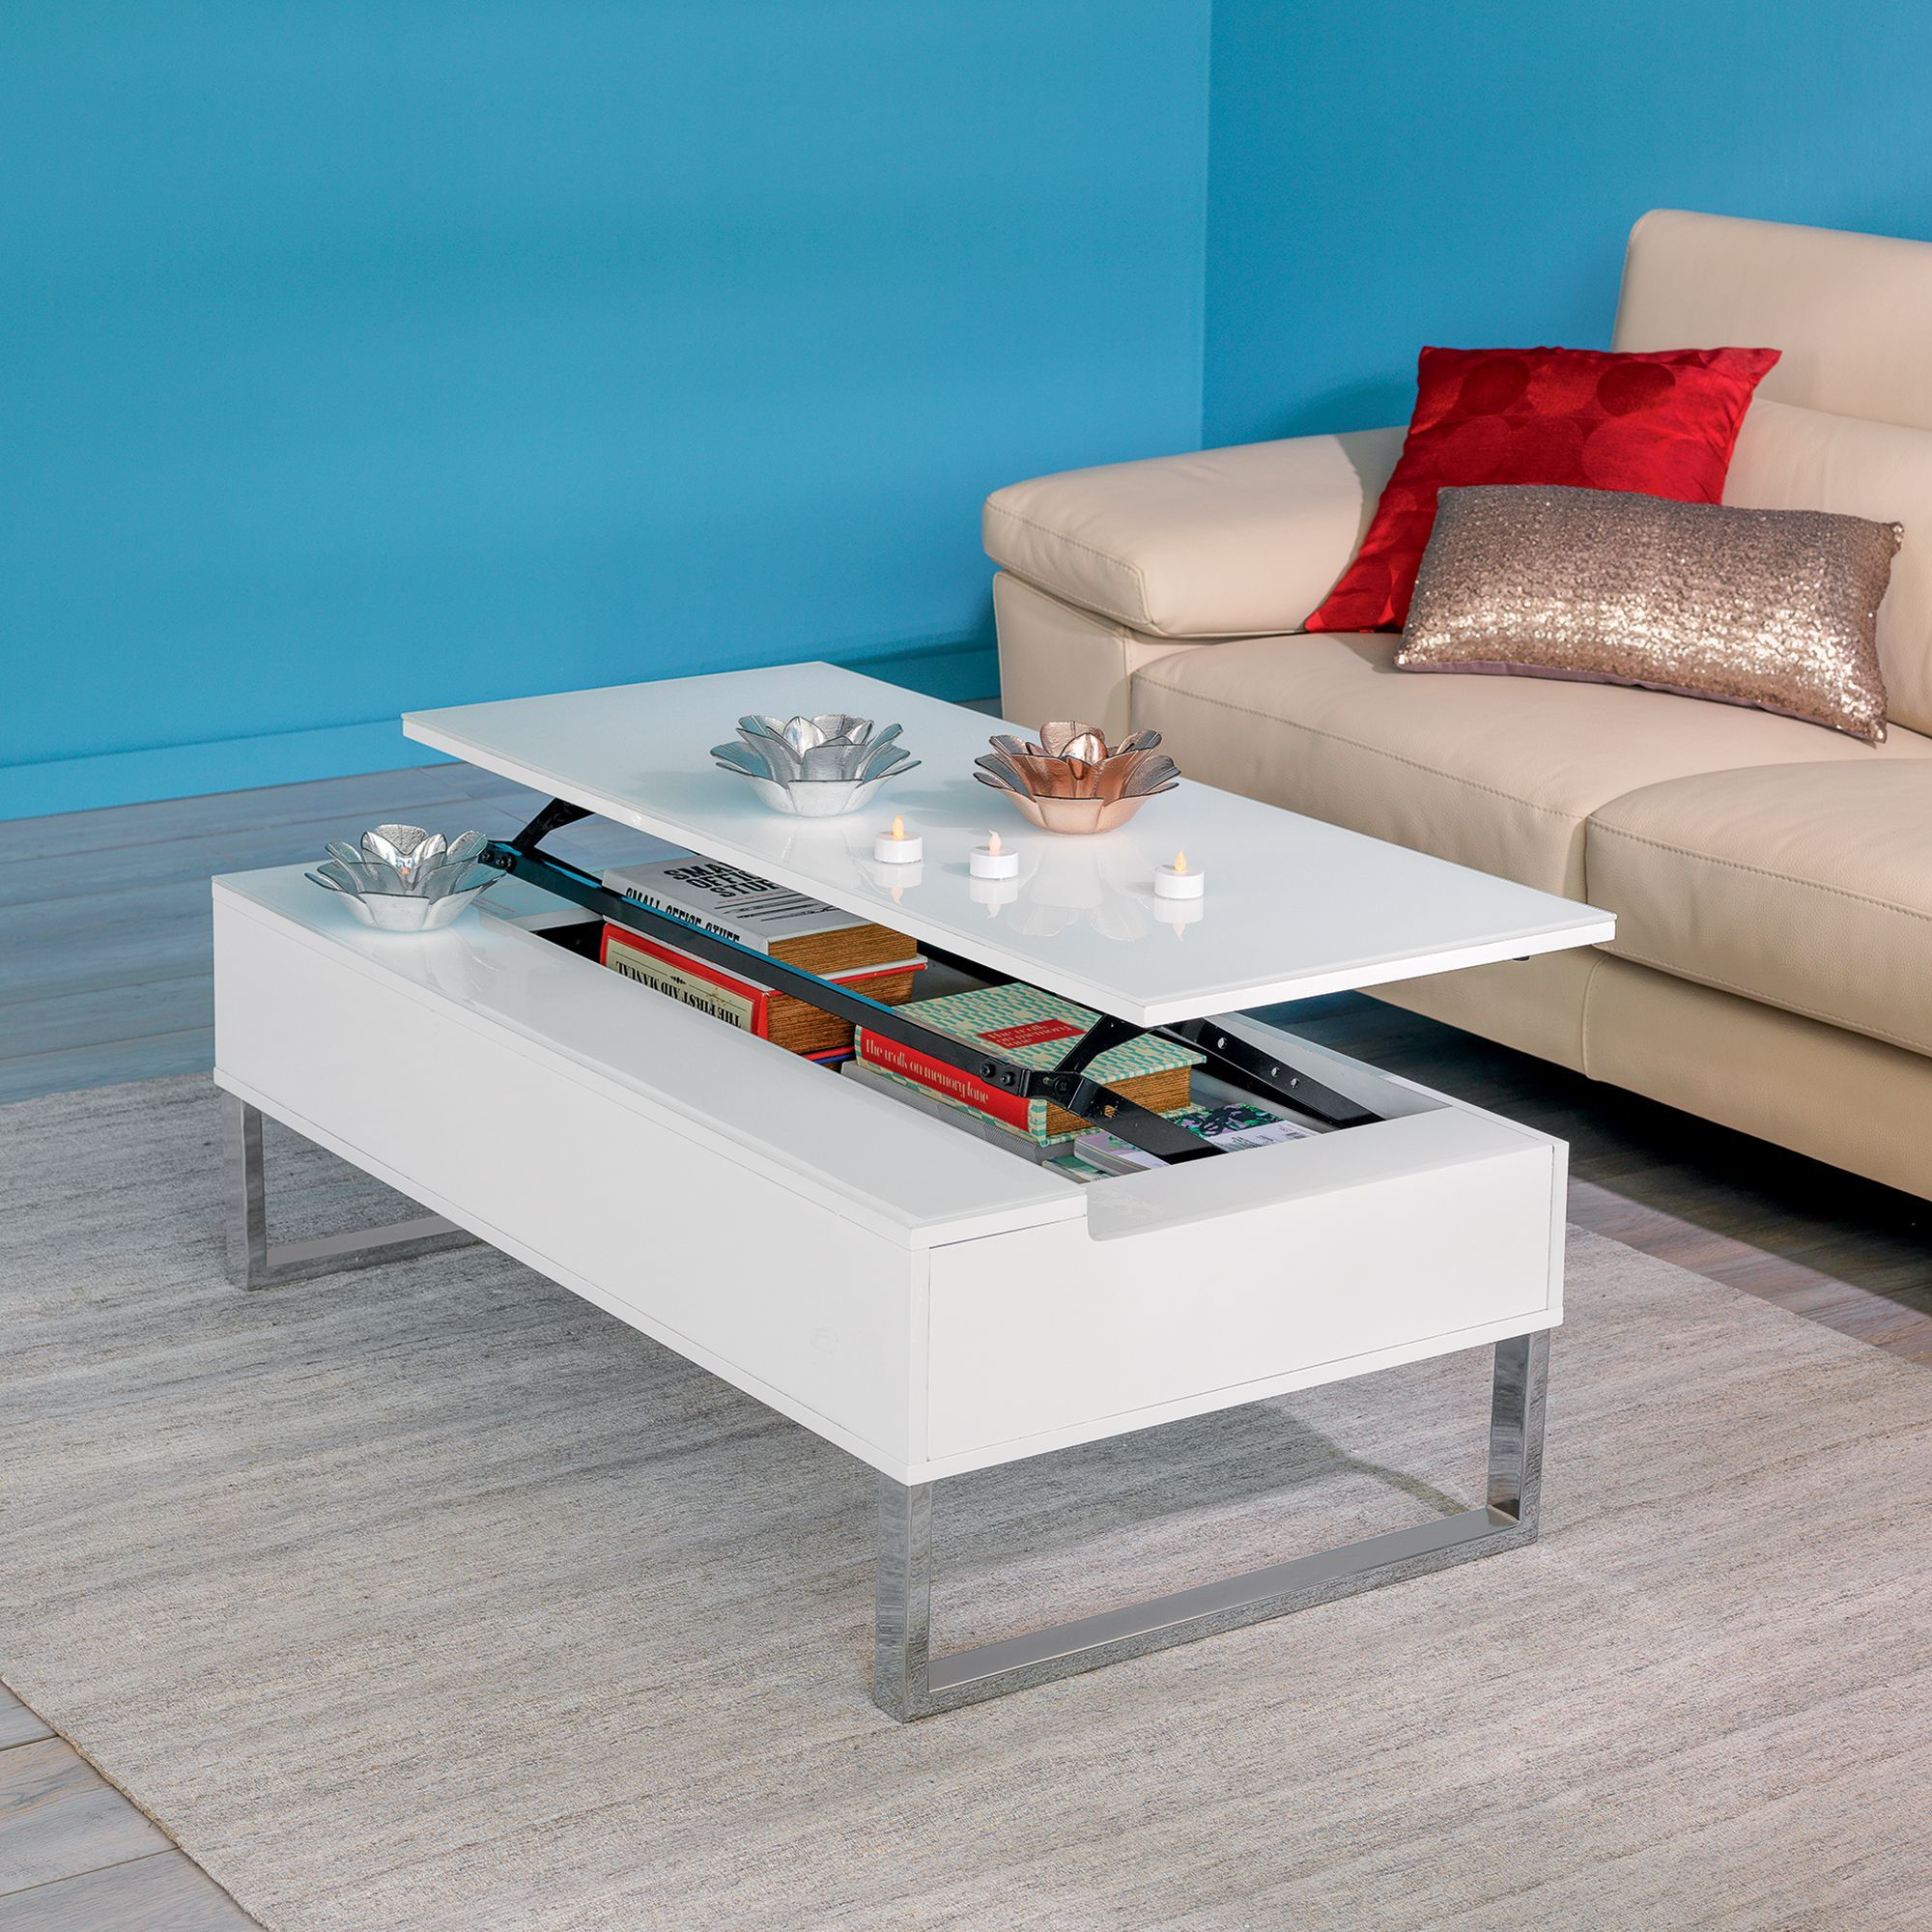 Table basse avec tablette relevable blanche blanc novy les tables basses - Table basse tablette ...